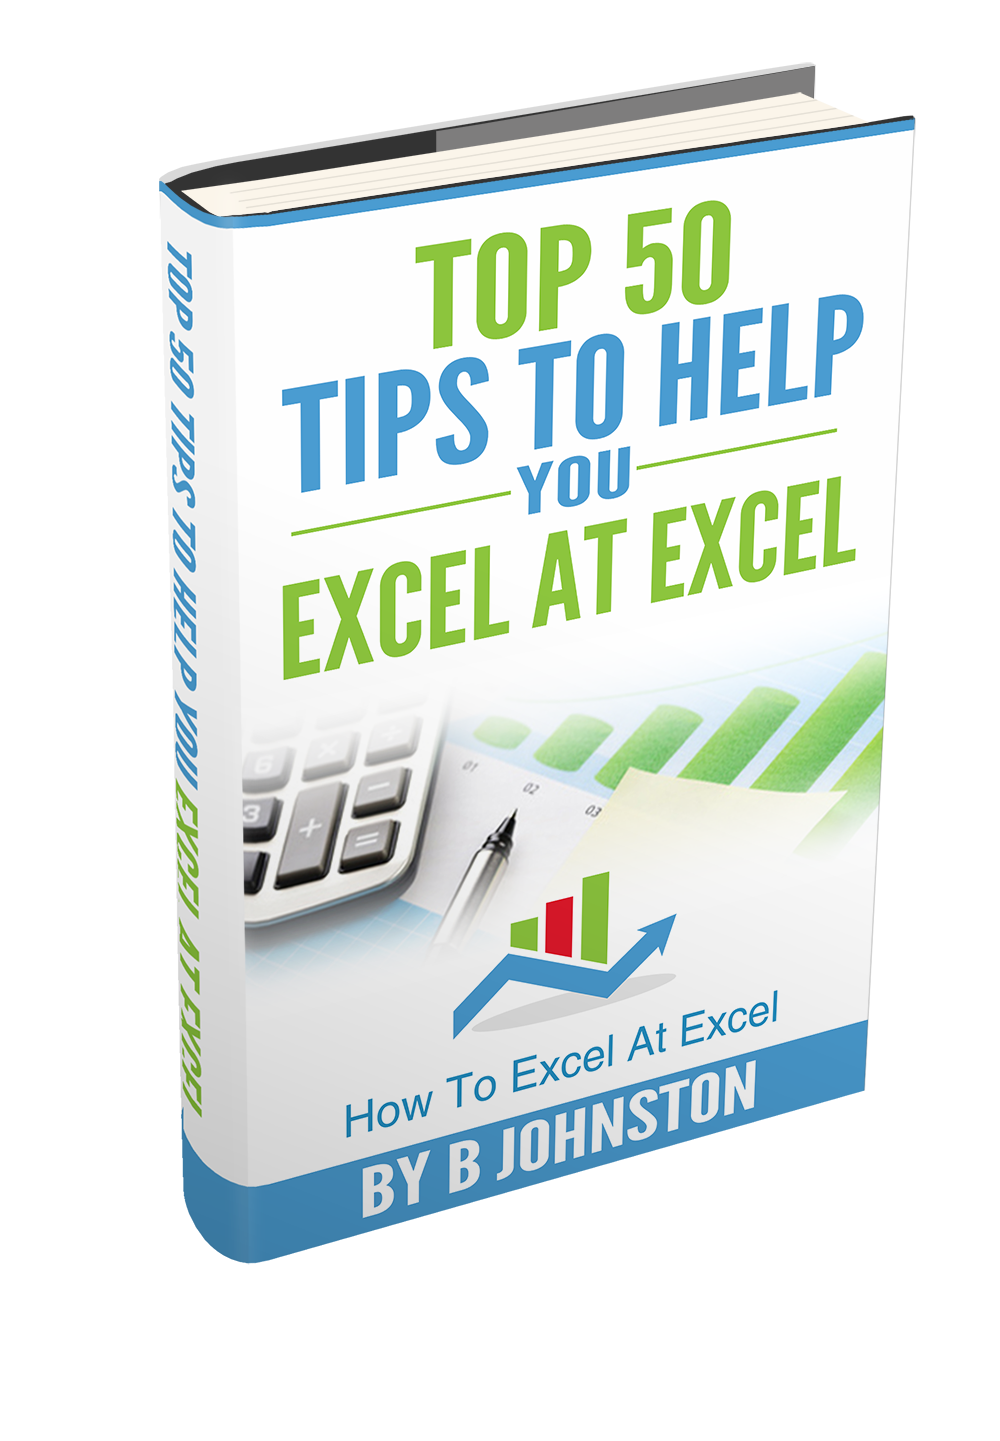 excel tips to help you excel at excel